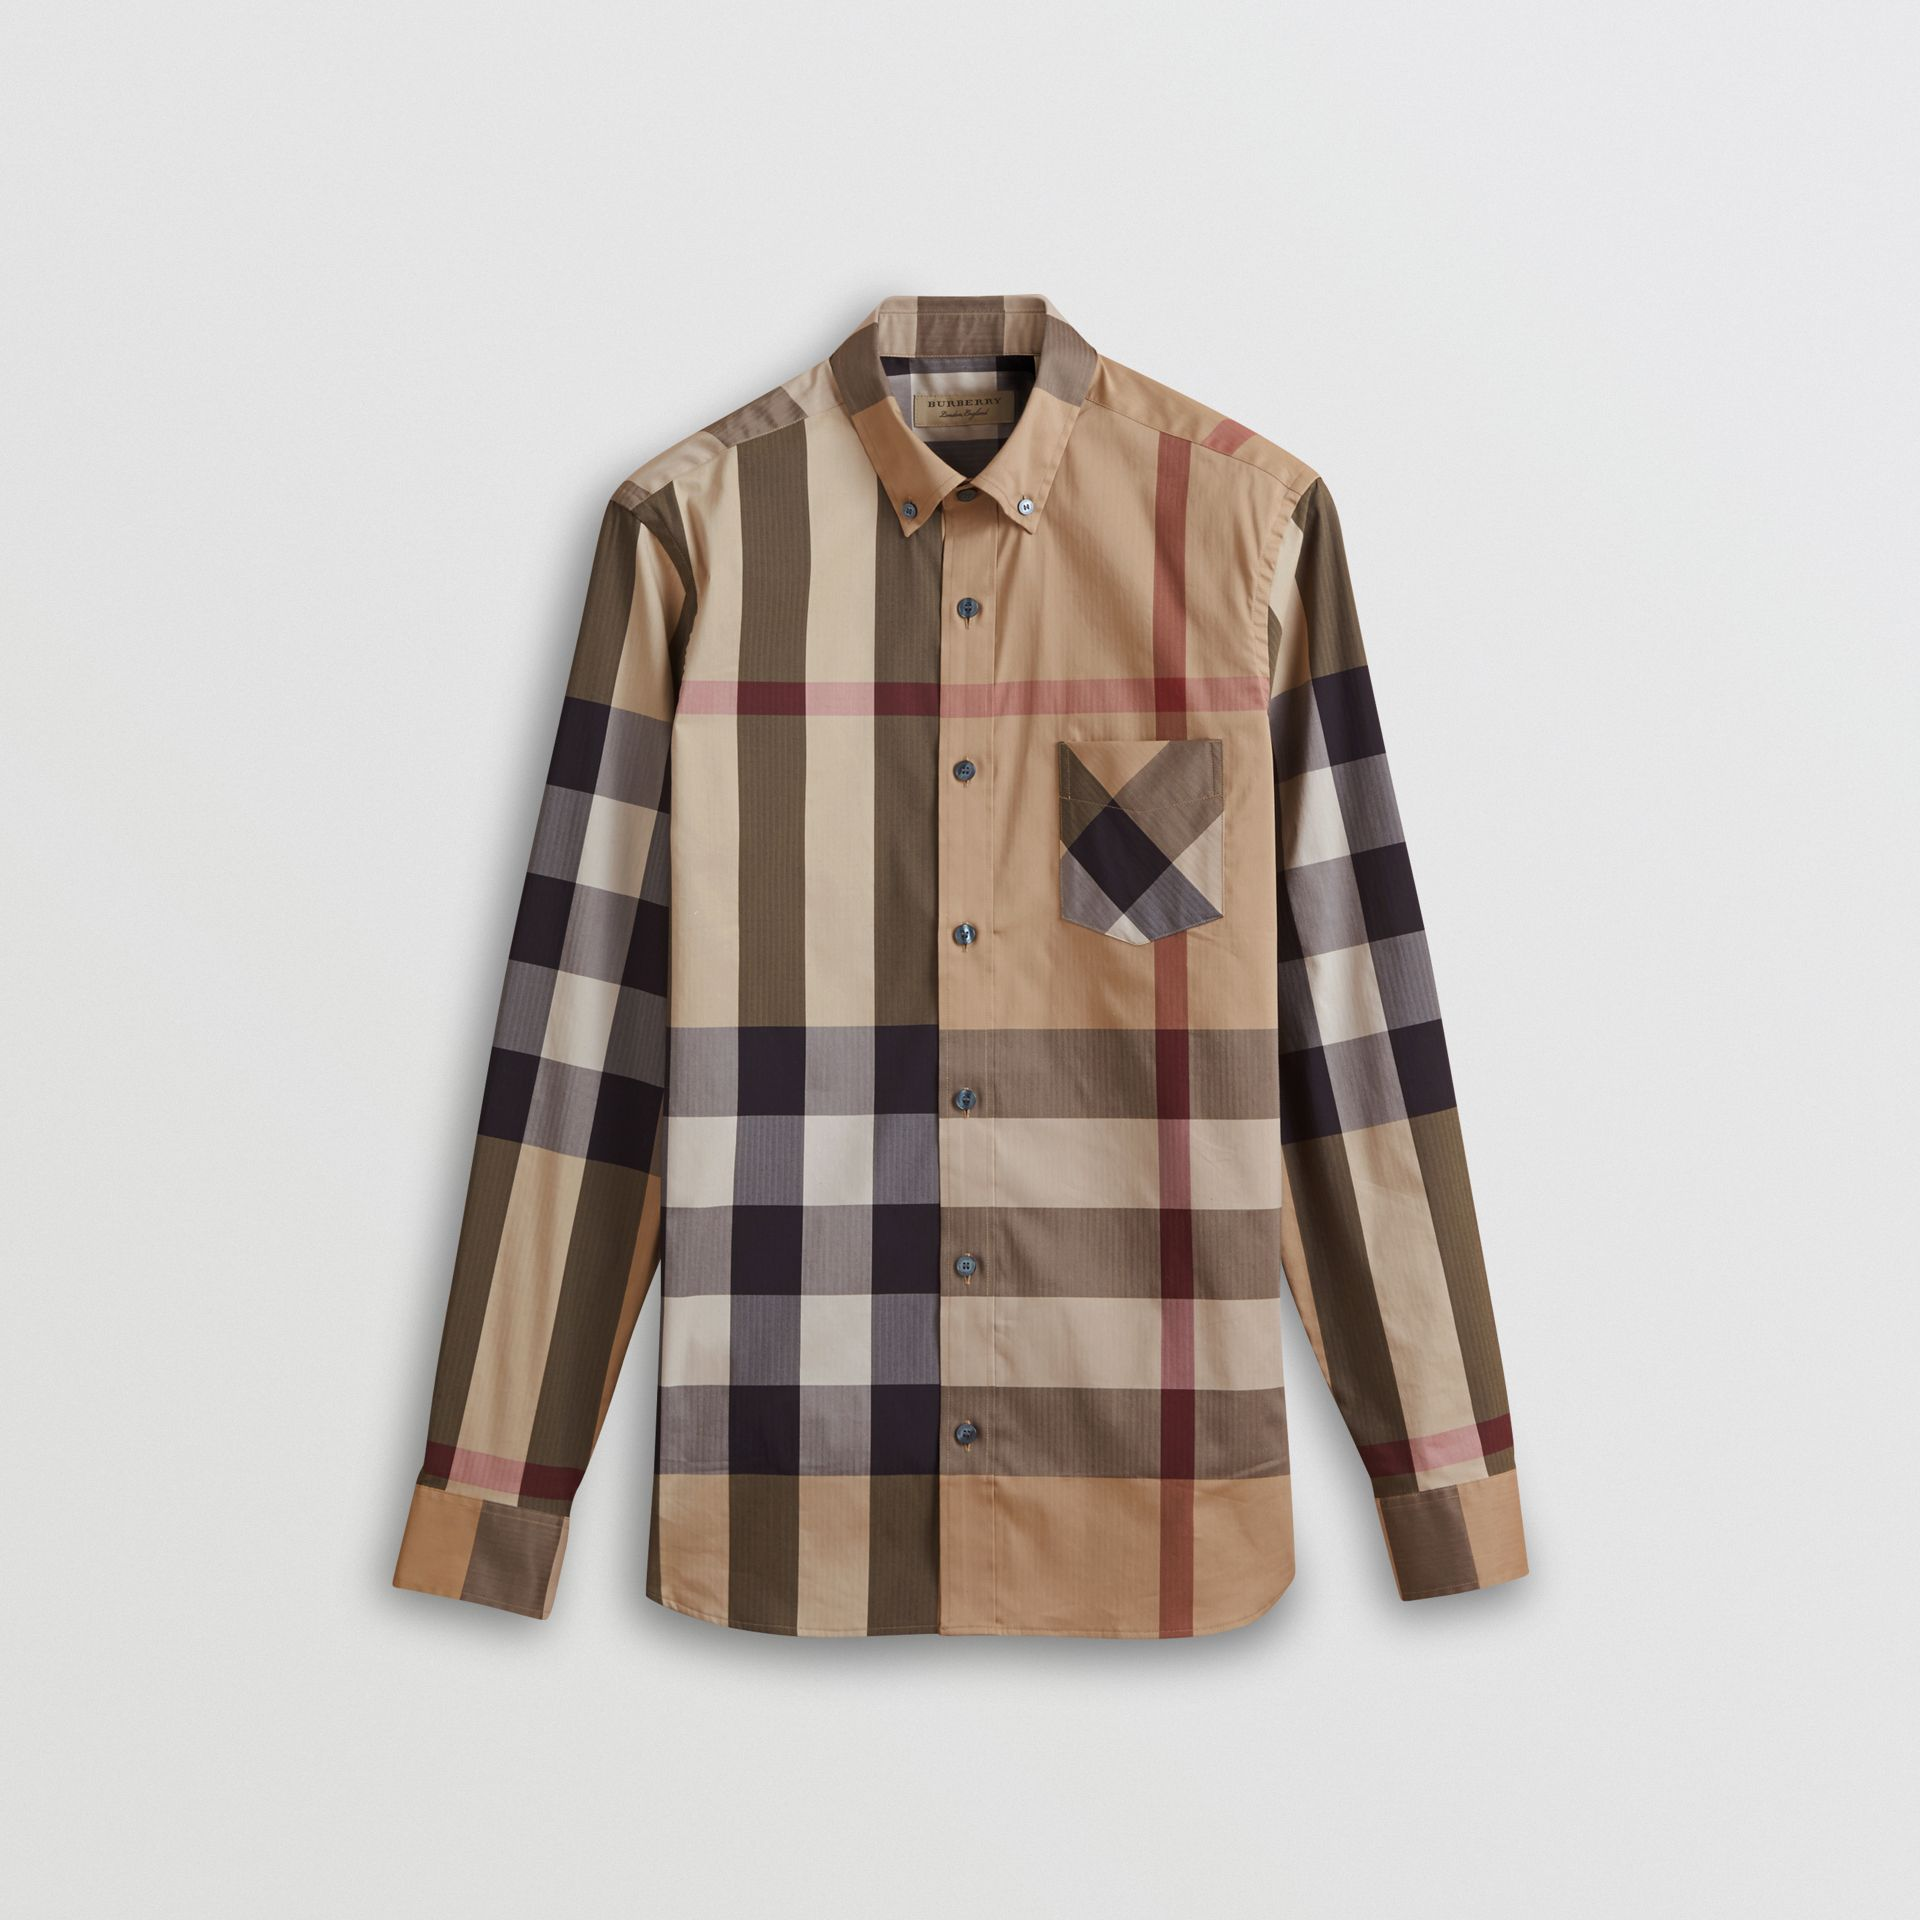 Button-down Collar Check Stretch Cotton Blend Shirt in Camel - Men | Burberry - gallery image 3